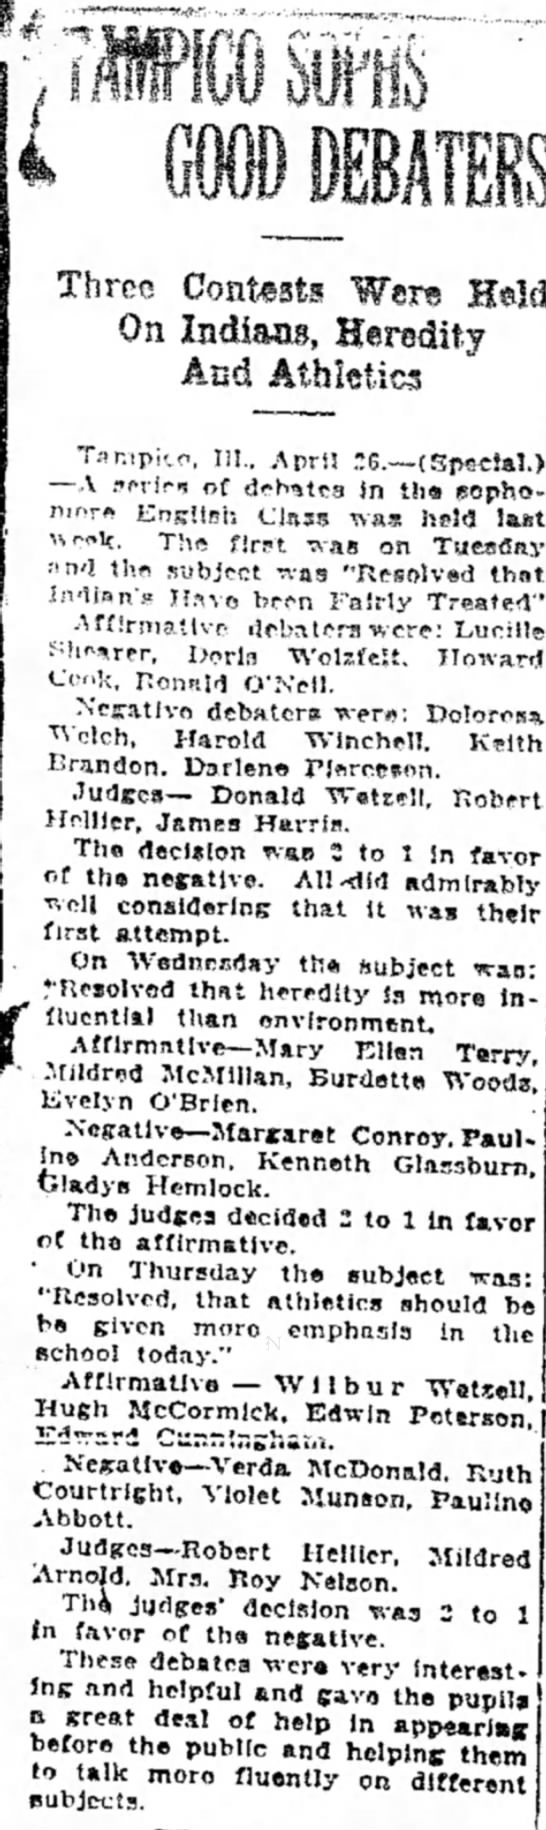 Margaret Conroy Apr 26, 1926 Sterling Daily Gazette - Three Contest! Were On Indians, Heredity And...